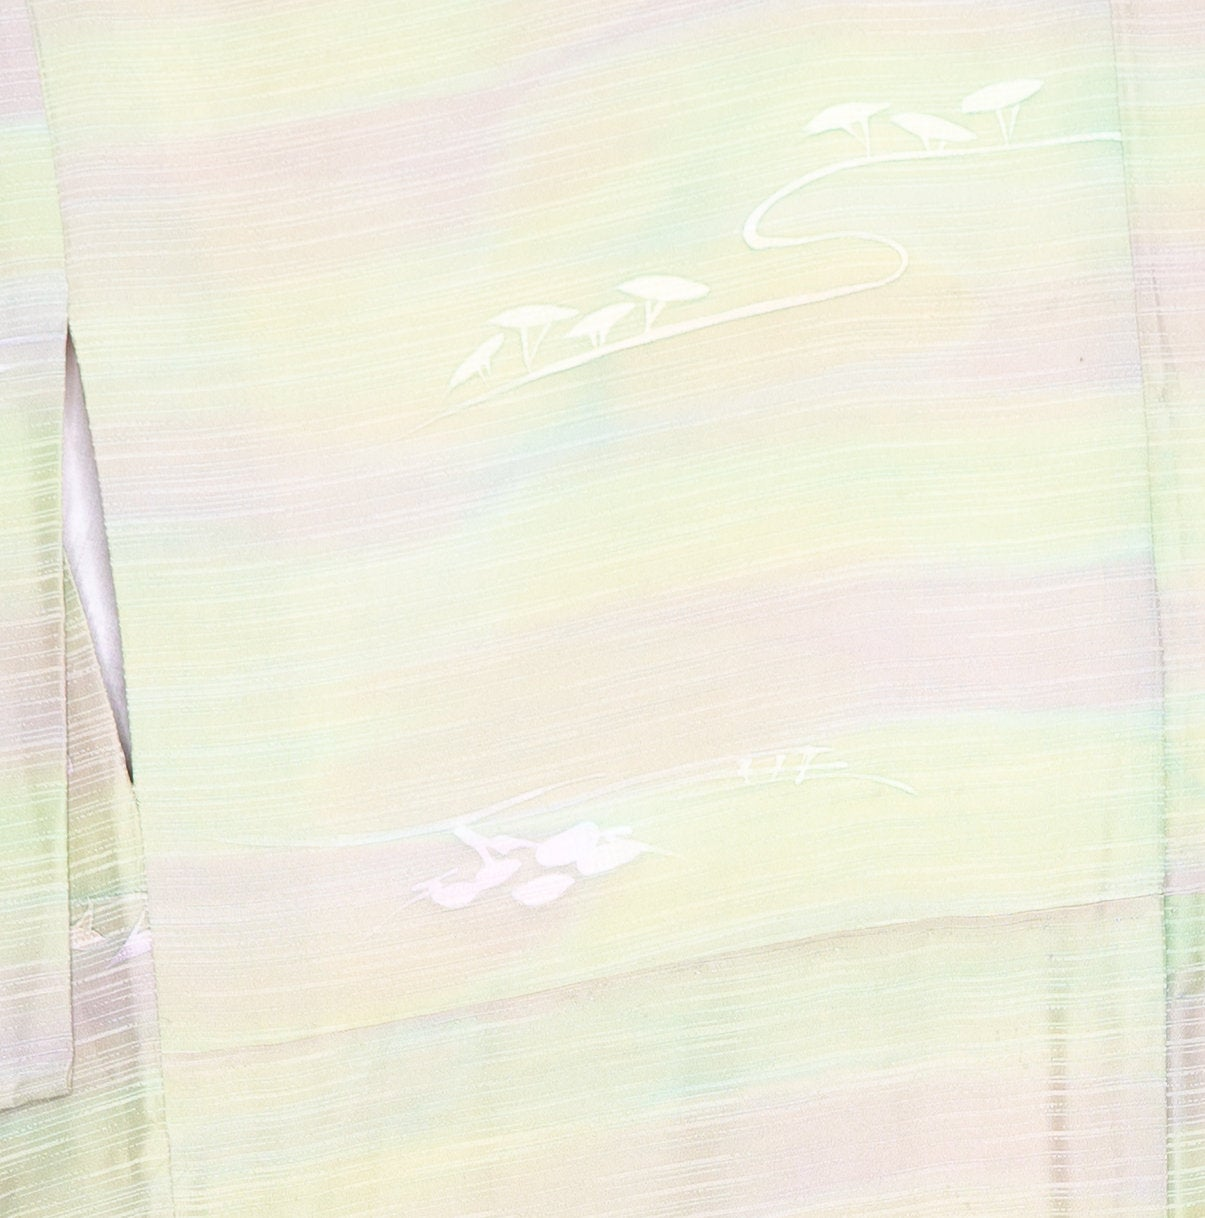 Simple Multicolored Hazy Kimono - Outdoors Scenery Plants Trees Leaves - Japanese Women's Silk